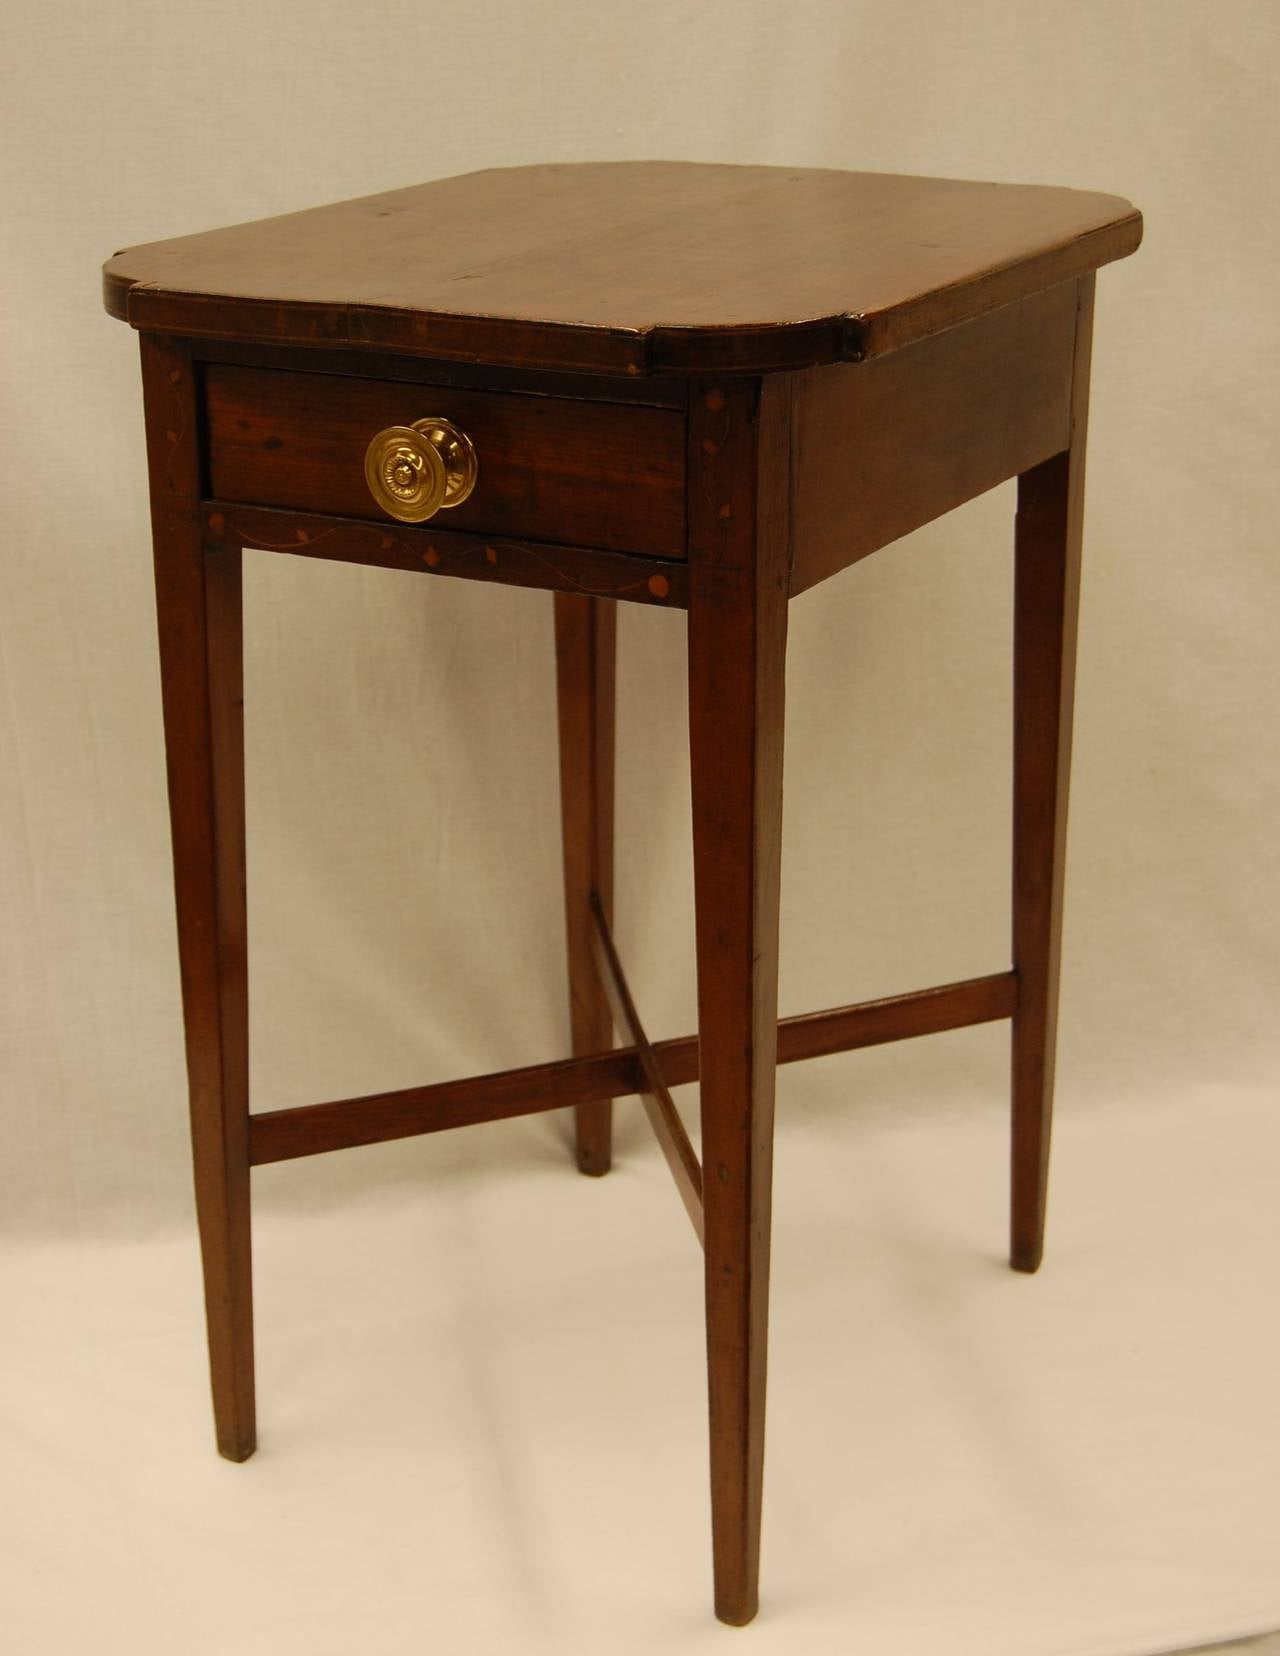 American federal side table with tapered legs and drawer